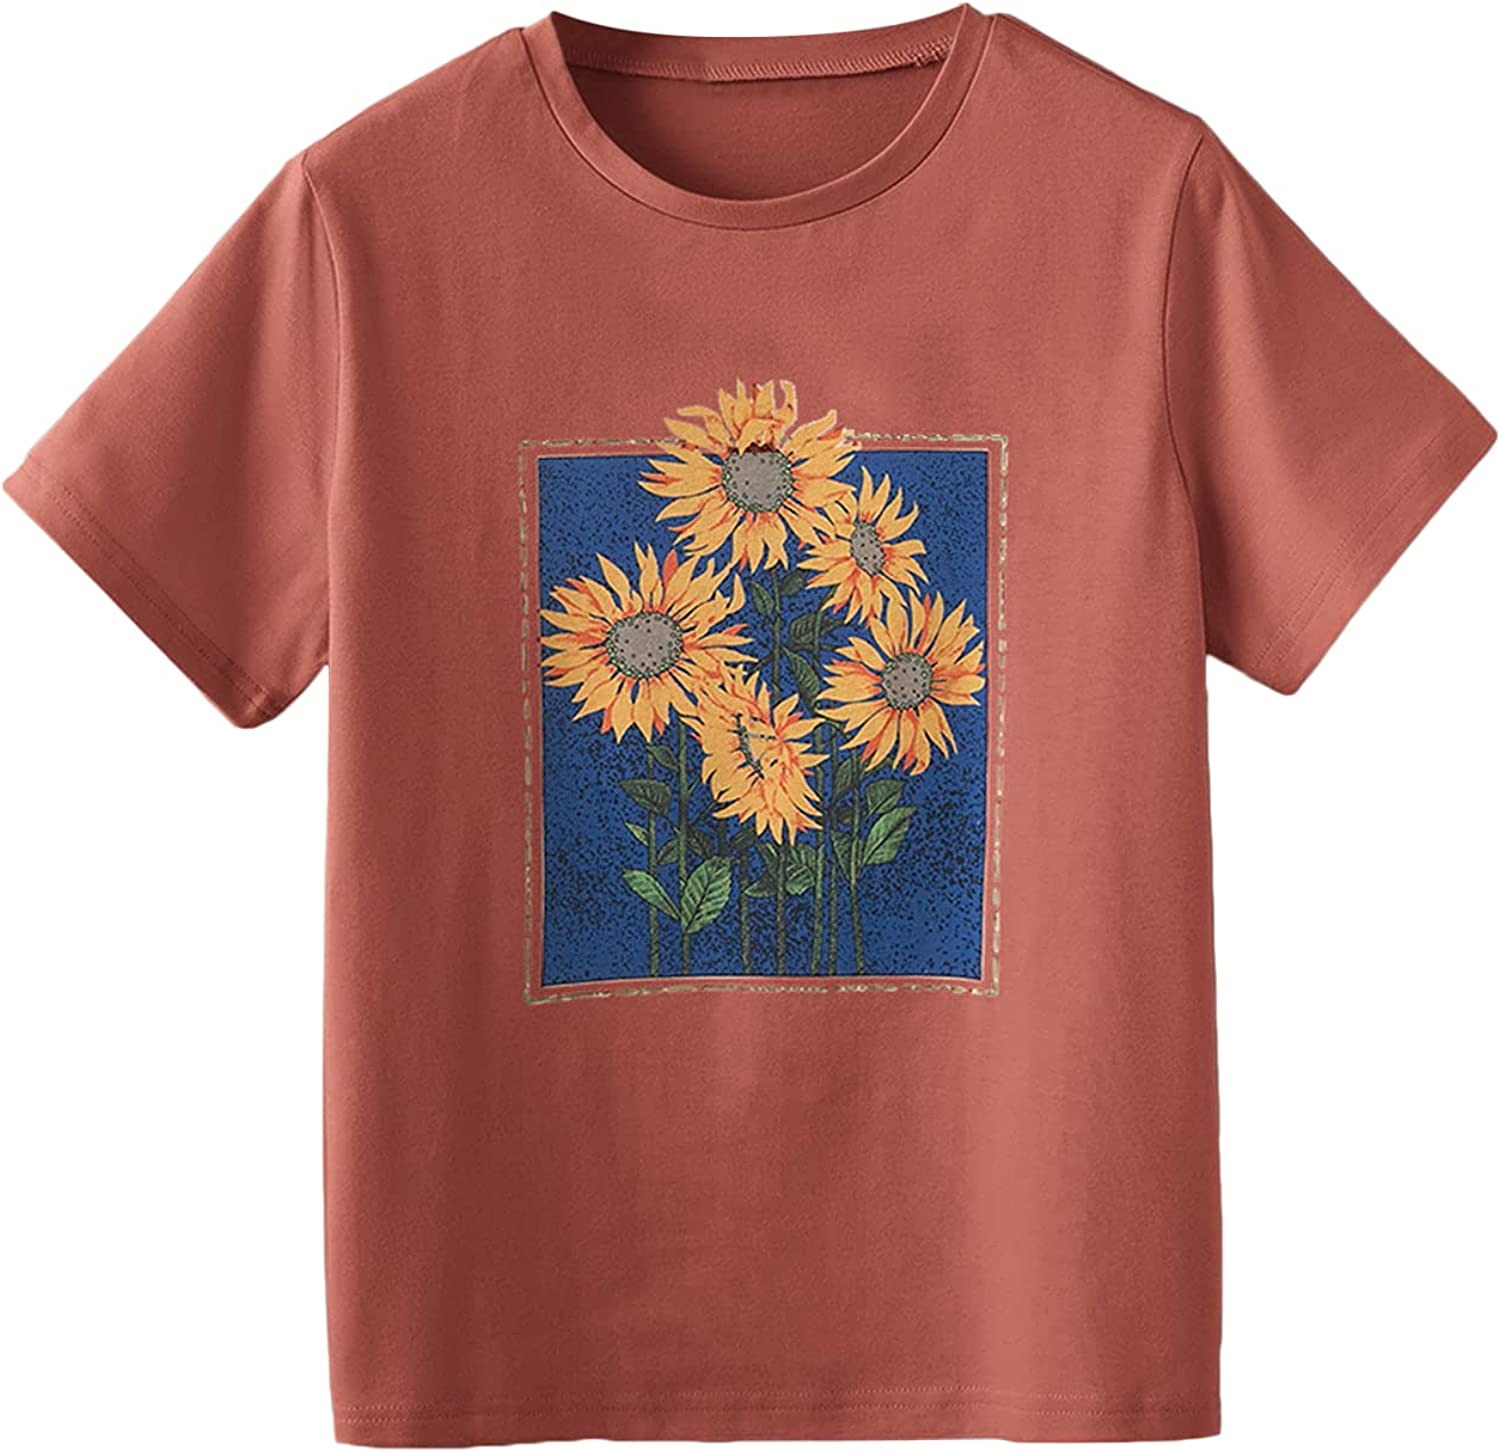 Romwe Women's Plus Size Floral Graphic Print Short Sleeve Basic T Shirt Tee Tops